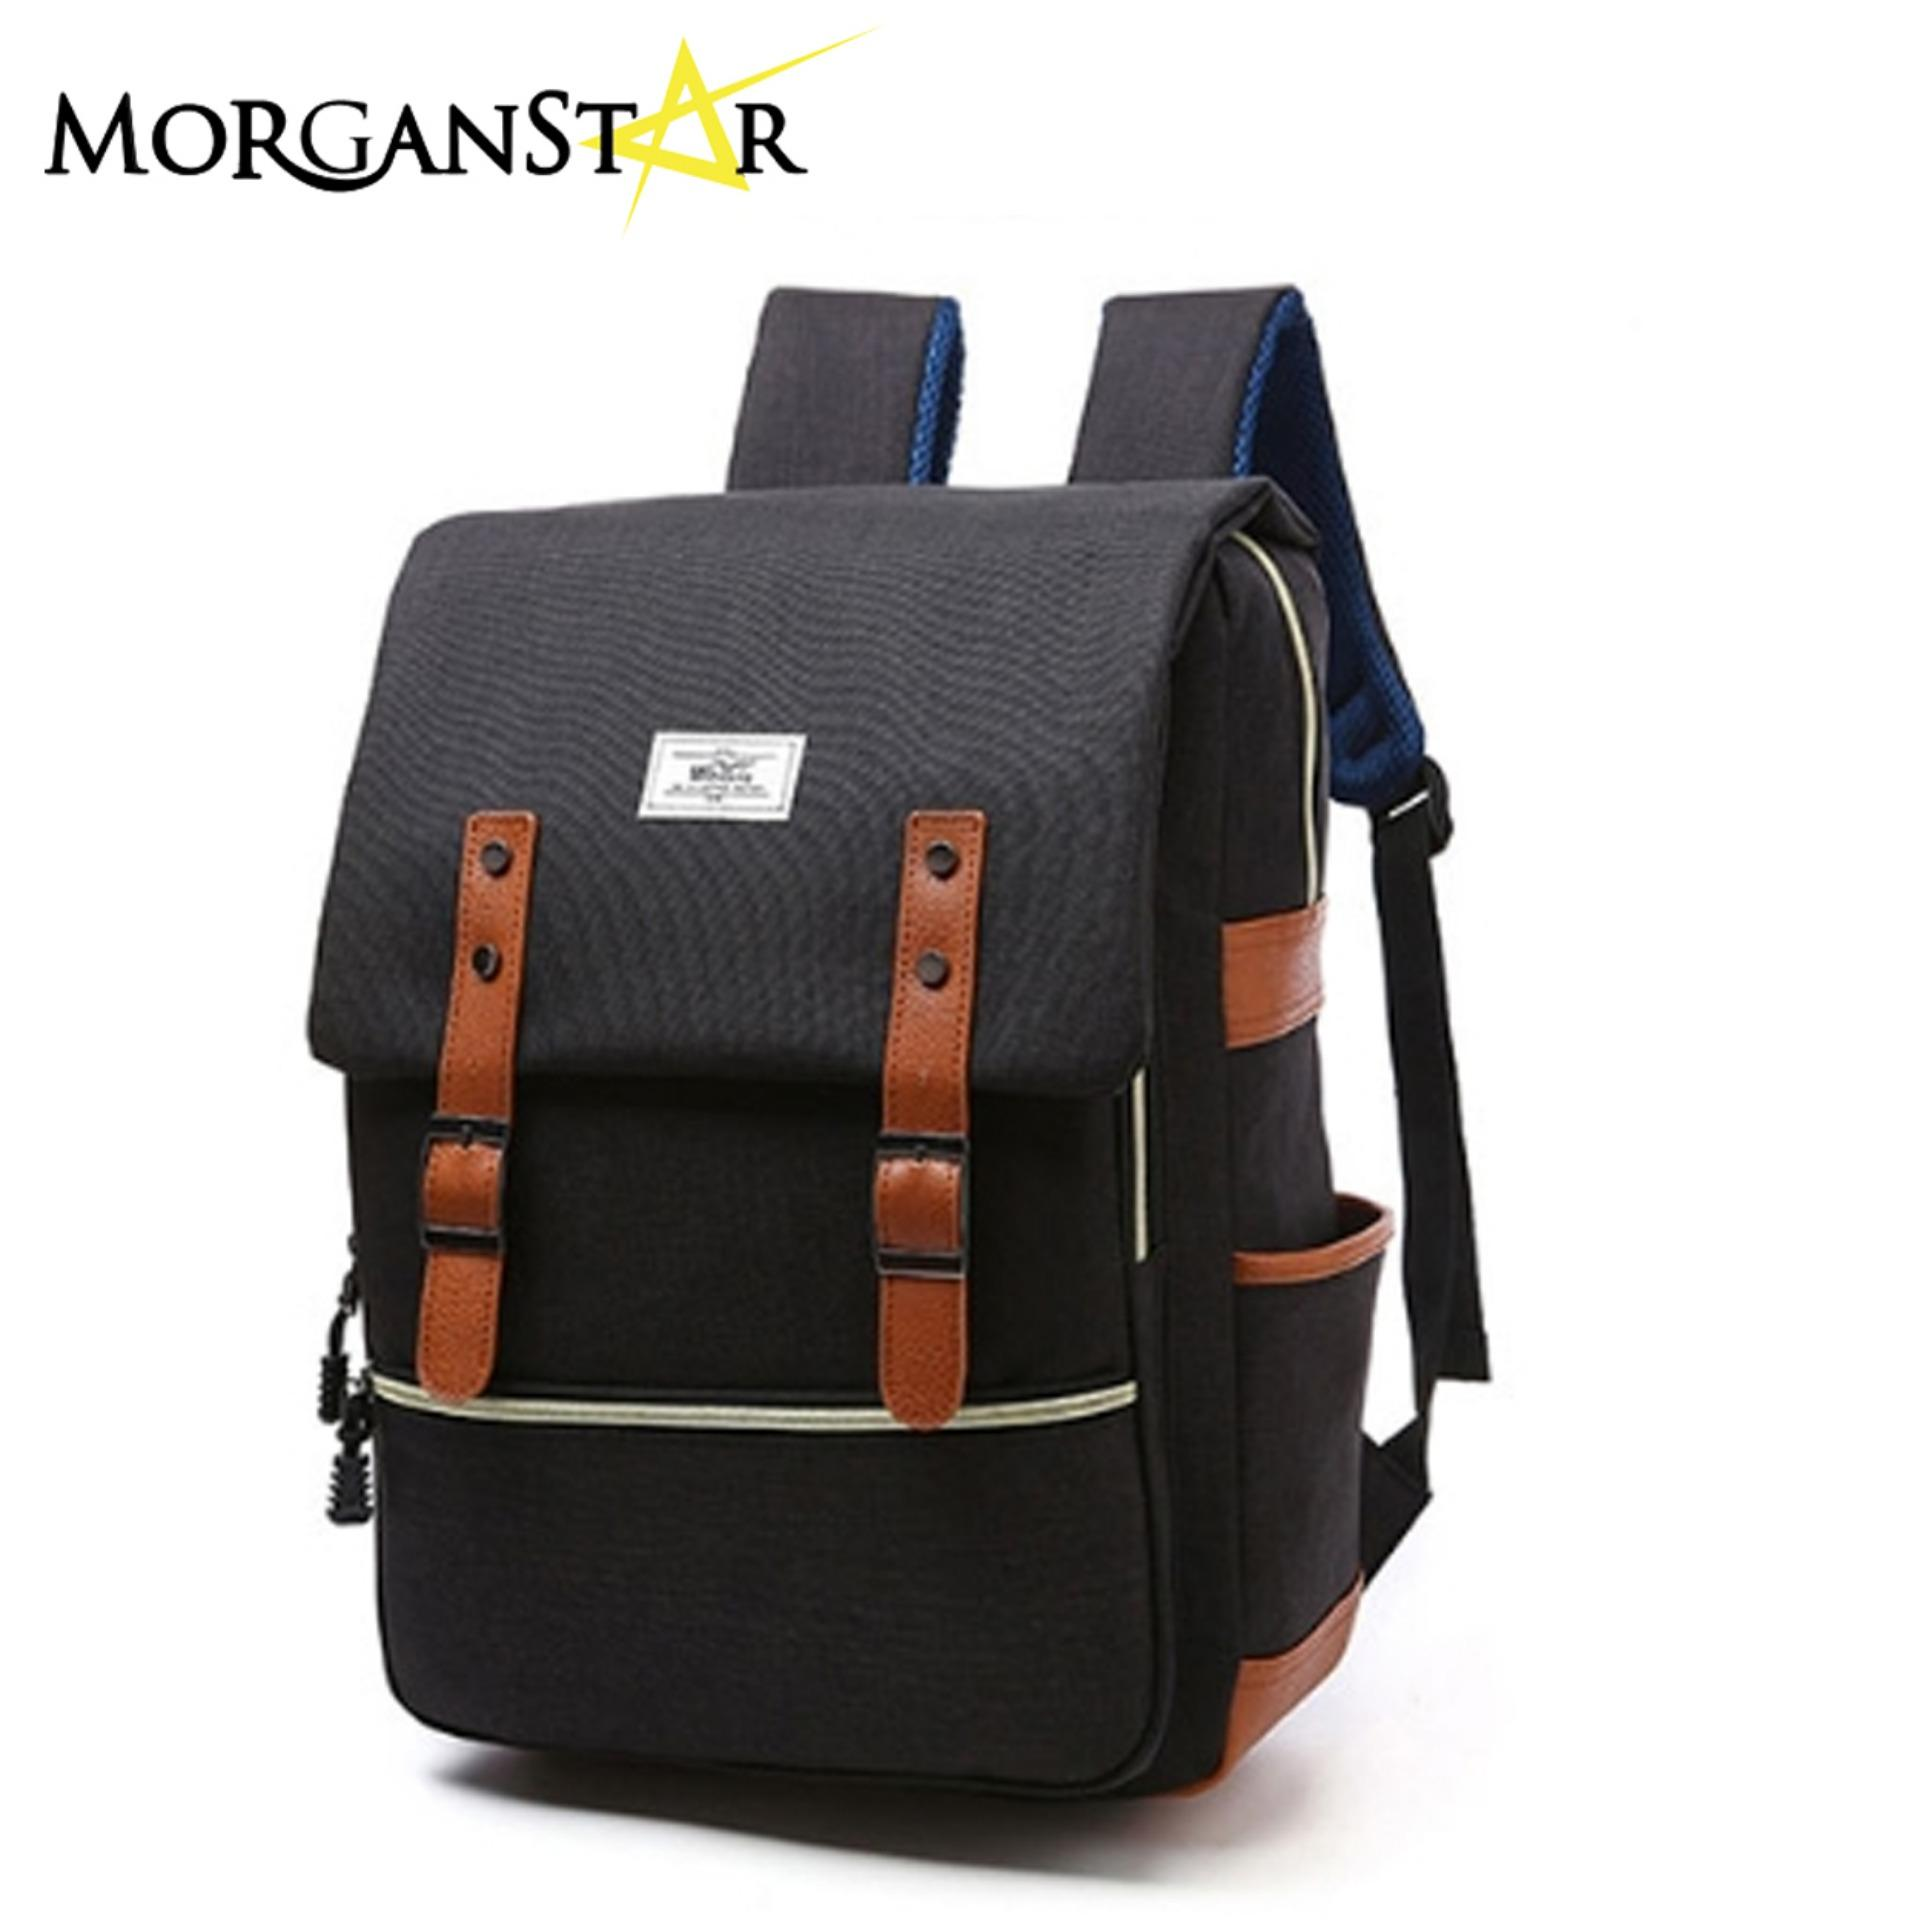 Wowang Unisex Leisure Lightweight Travel Laptop Backpack Men Oxford Cloth Business Backpack (black) By Morganstar Marketing.